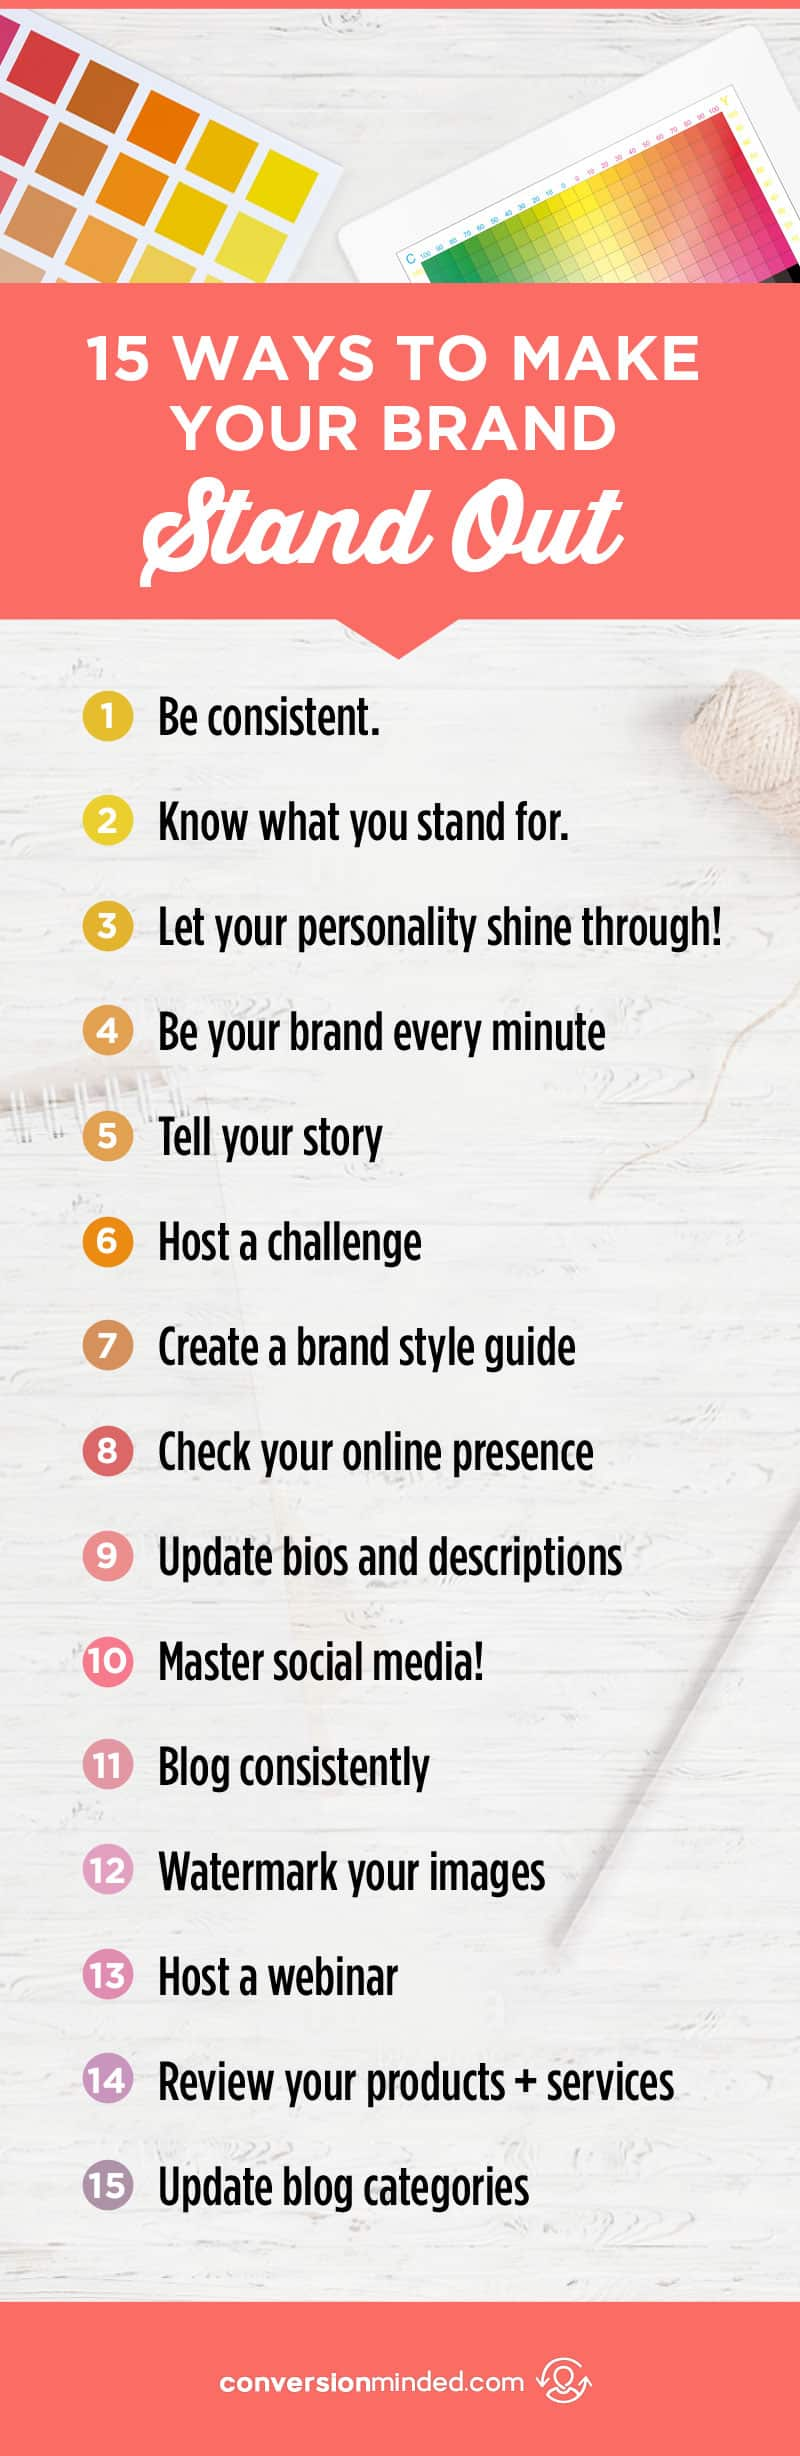 15 Ways to Make Your Brand Stand Out | Struggling to attract your dream customers? Ready to stand out and get noticed online? This post was created just for you. It include 15 things bloggers and entrepreneurs can do to stand out above the rest and effortlessly attract your ideal customers. Click through to see all the tips!